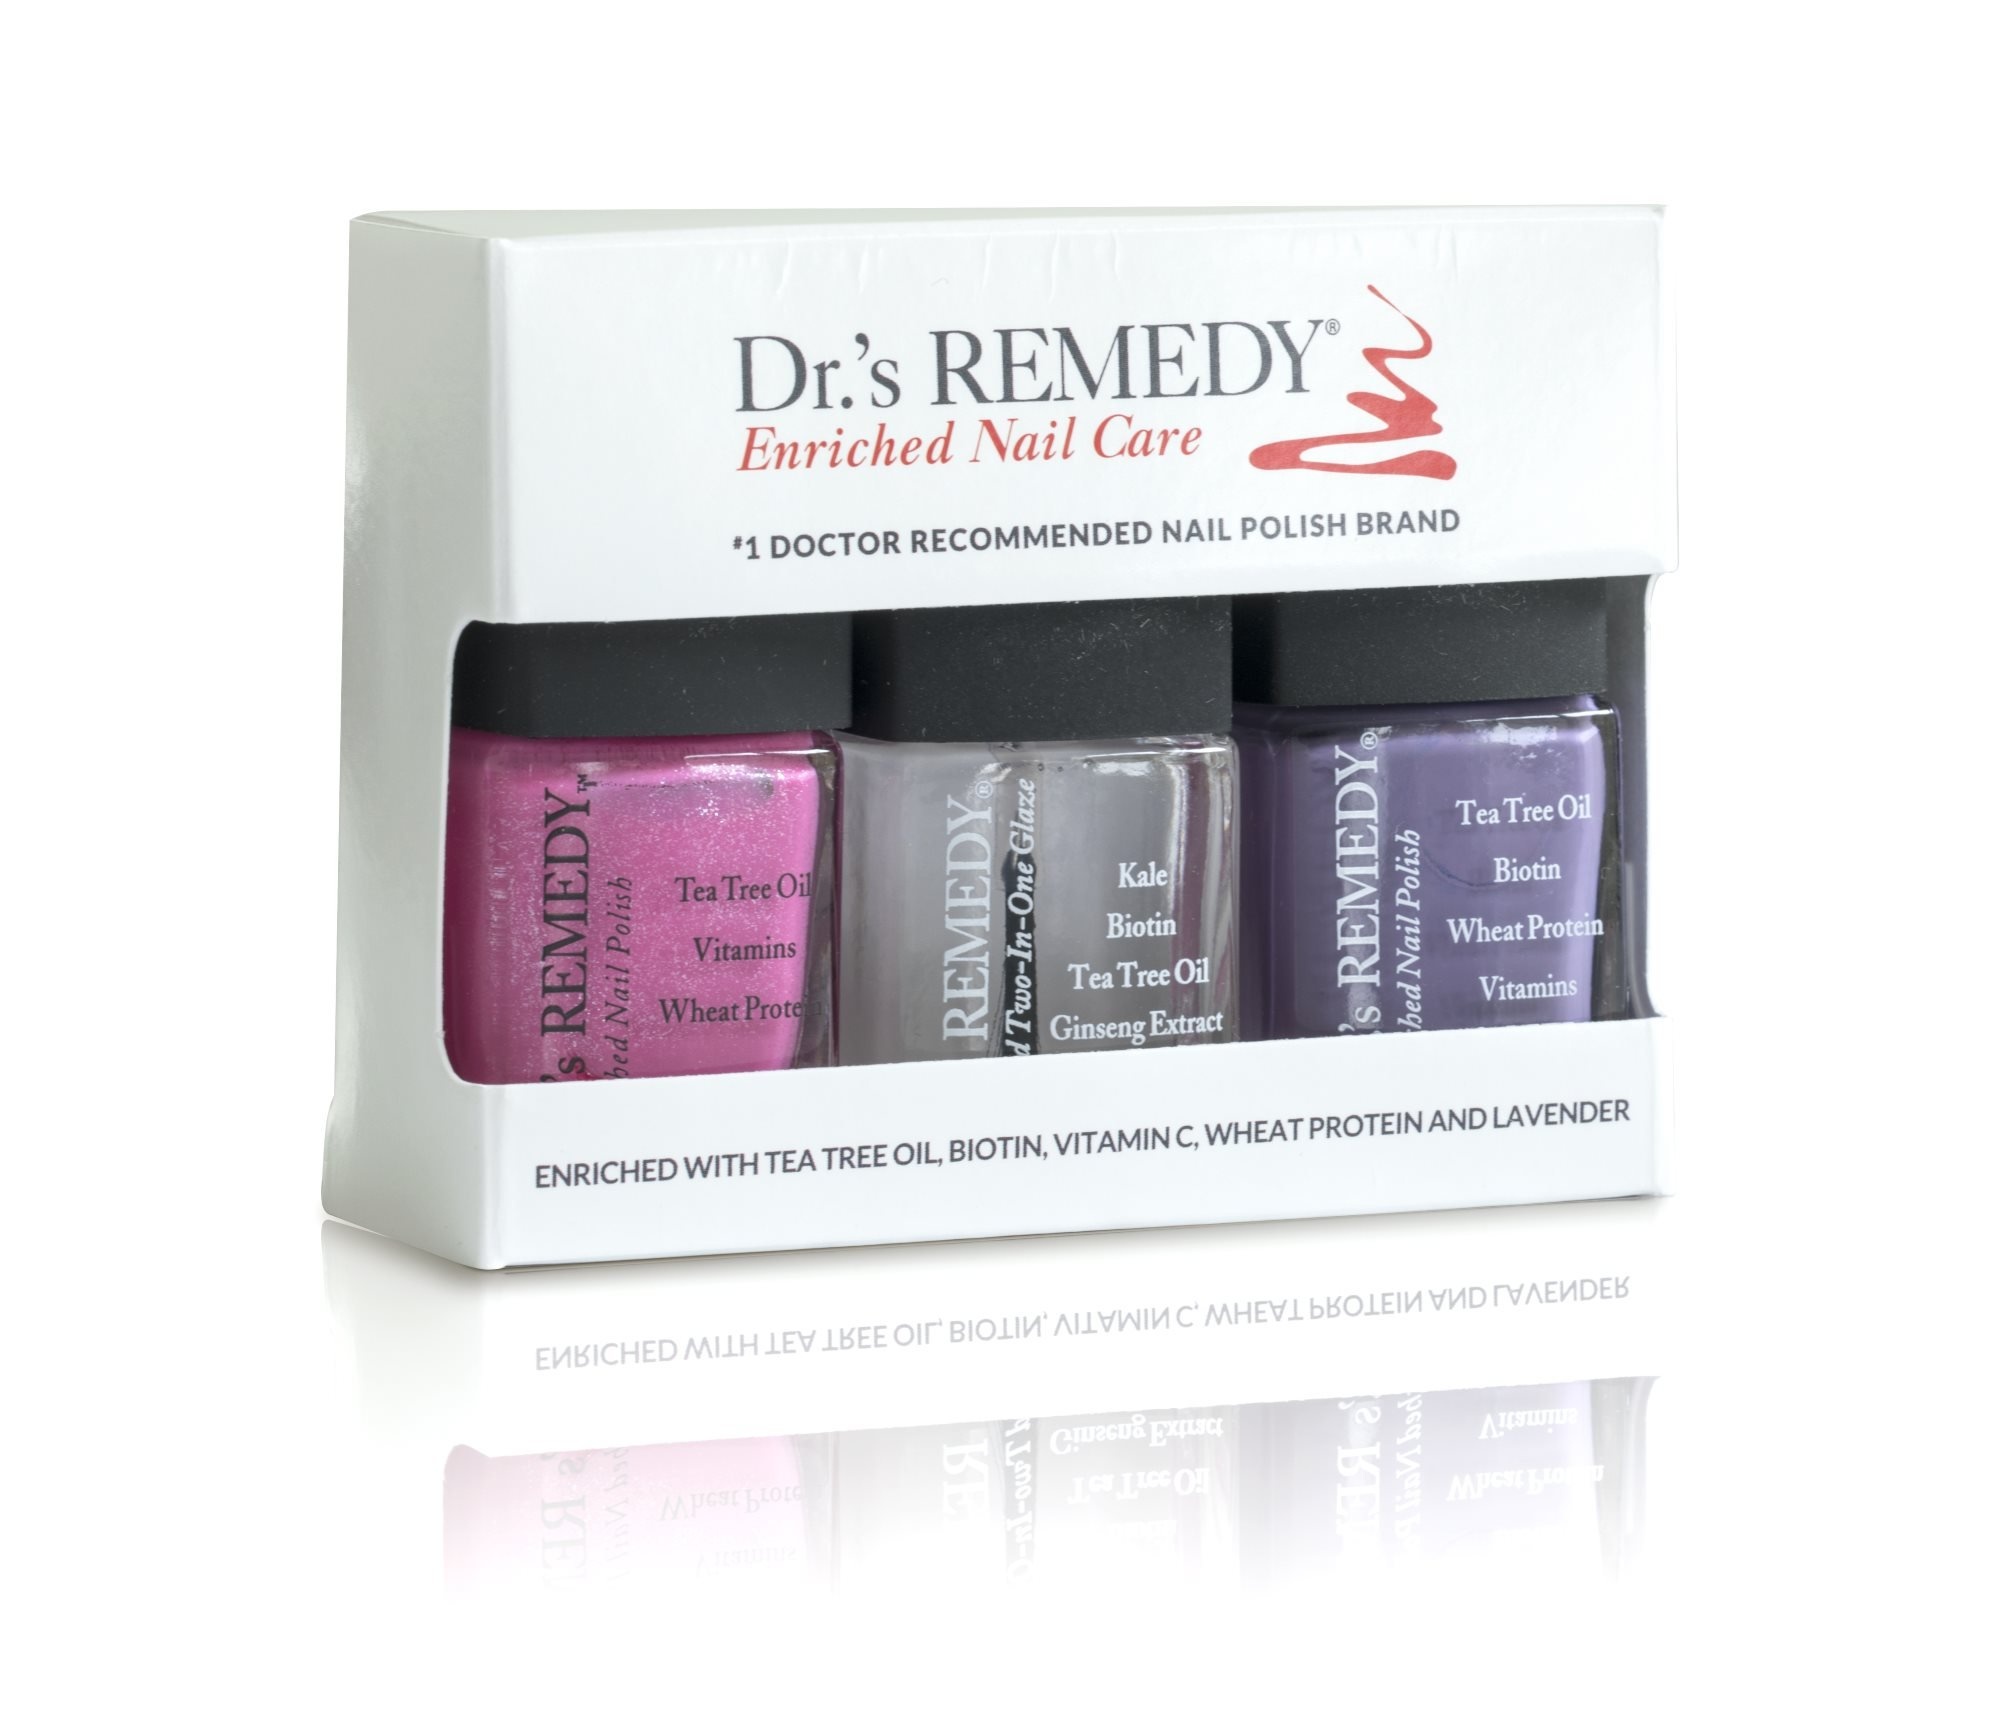 Dr.'s Remedy Nail Polish Gift Set - Doctor Recommended Orthoticshop Box Set